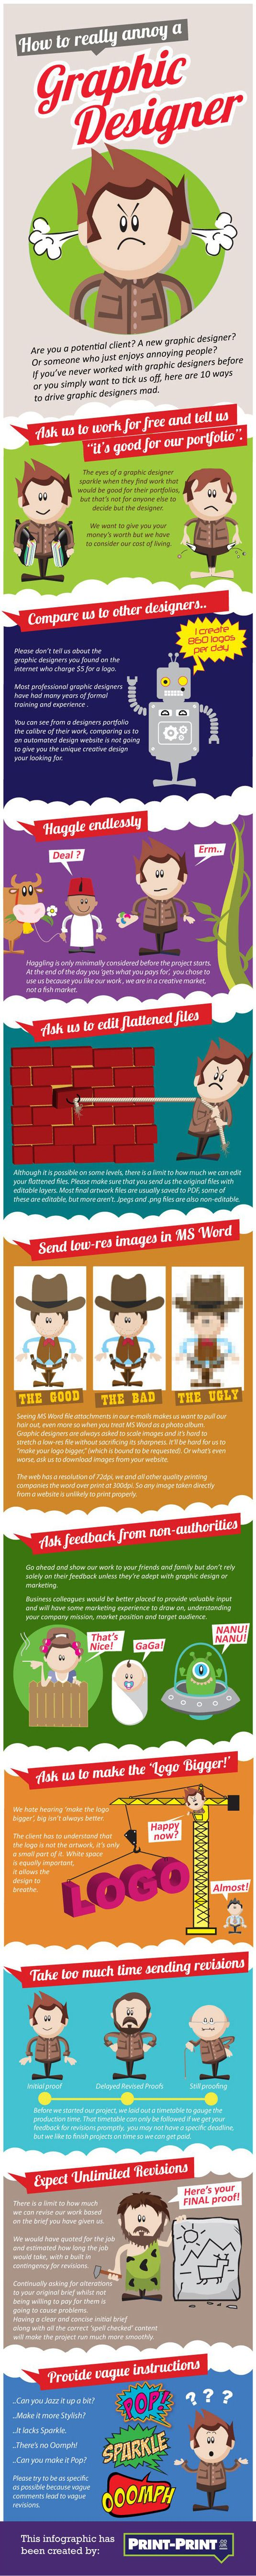 How to really annoy a graphic designer | Infographic | Creative Bloq